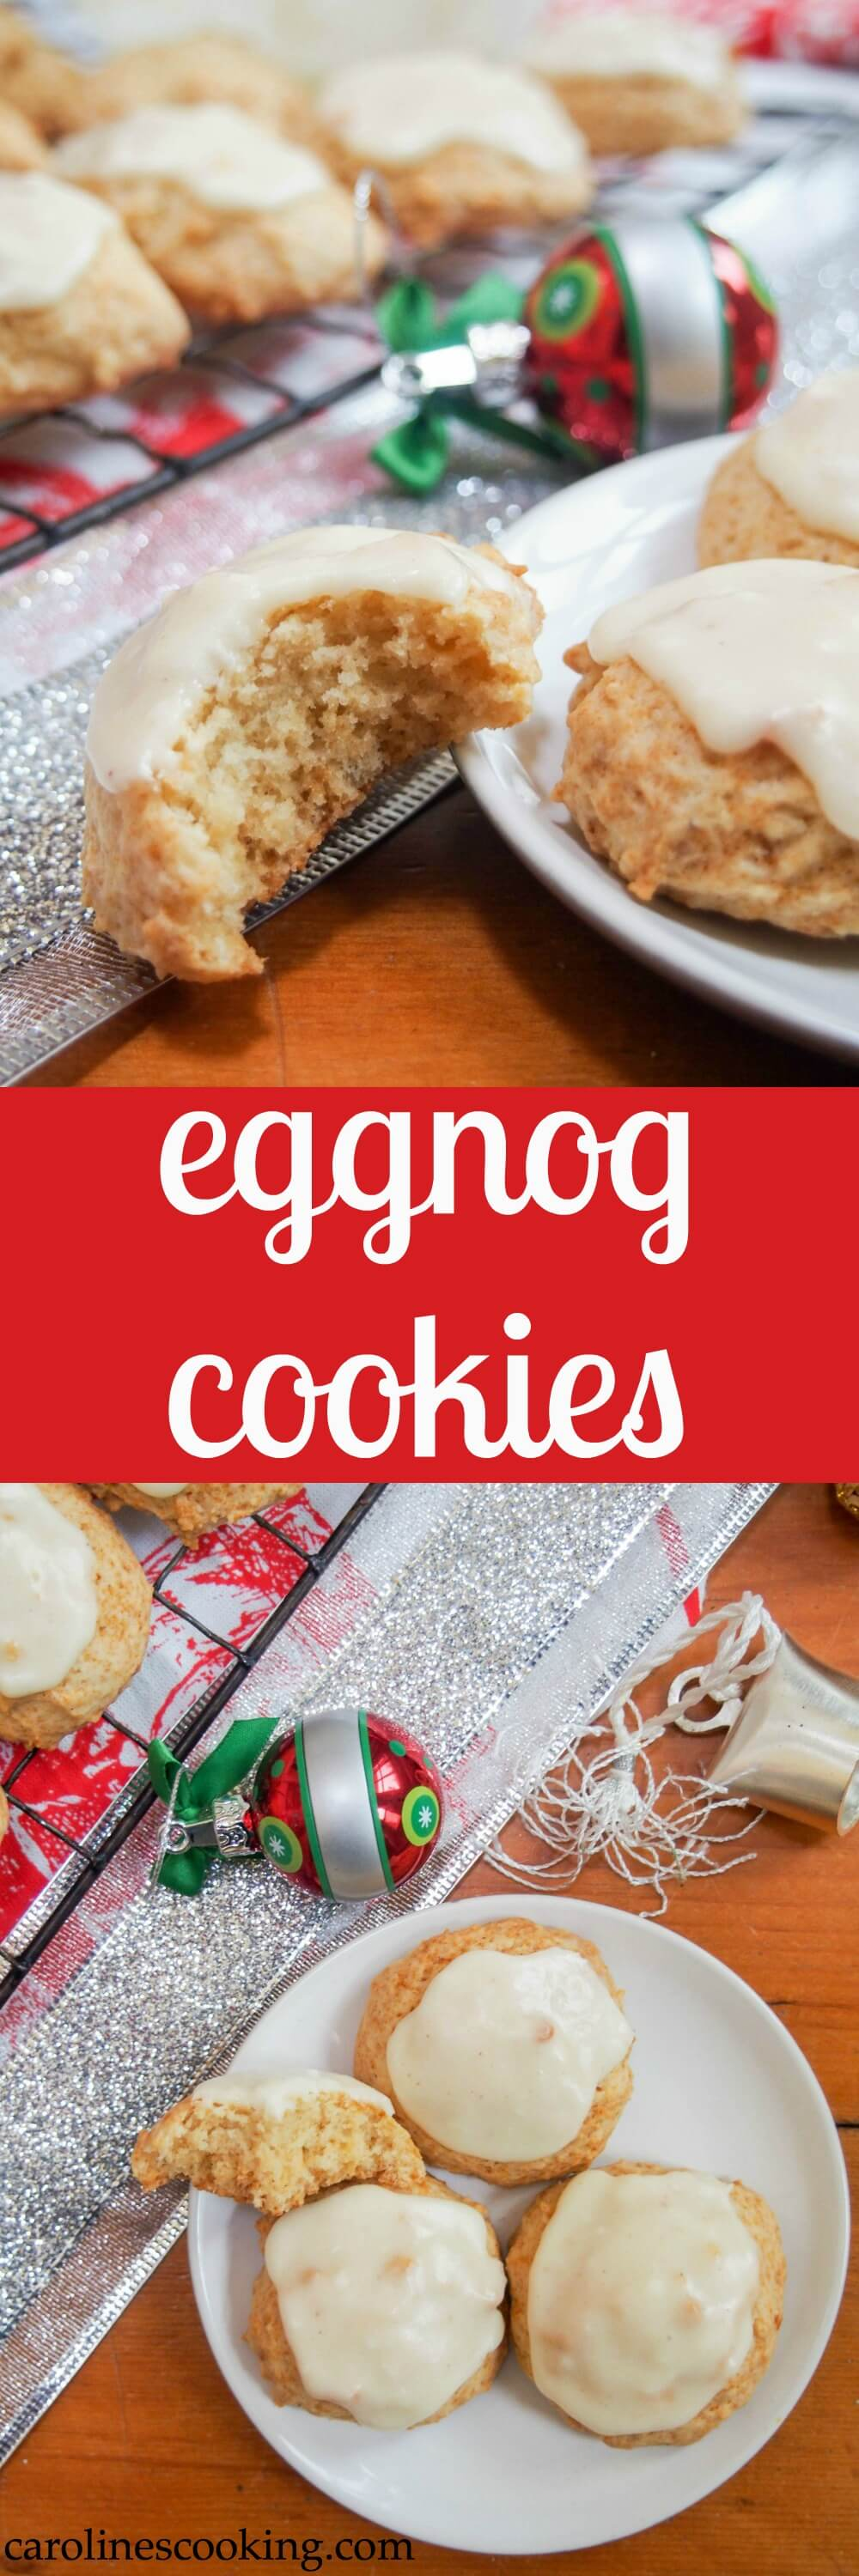 These delicious soft eggnog cookies are a true taste of the season. And you don't need to buy eggnog - this recipe starts from scratch but is easy to make too! #eggnog #cookies #christmascookies